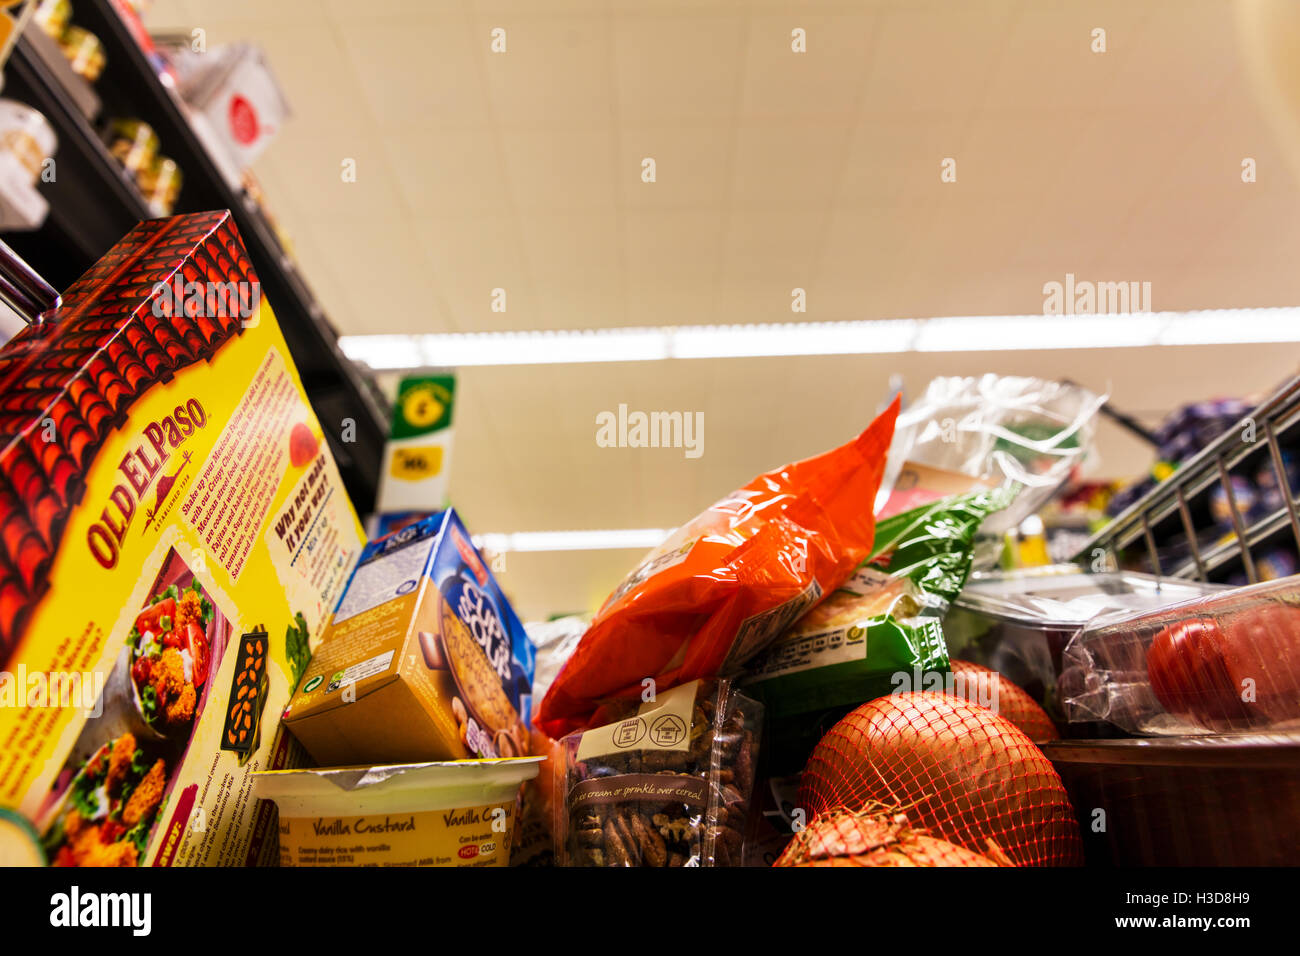 Groceries in shopping cart in supermarket trolley food shopping in trolley shop store grocers supermarkets goods - Stock Image